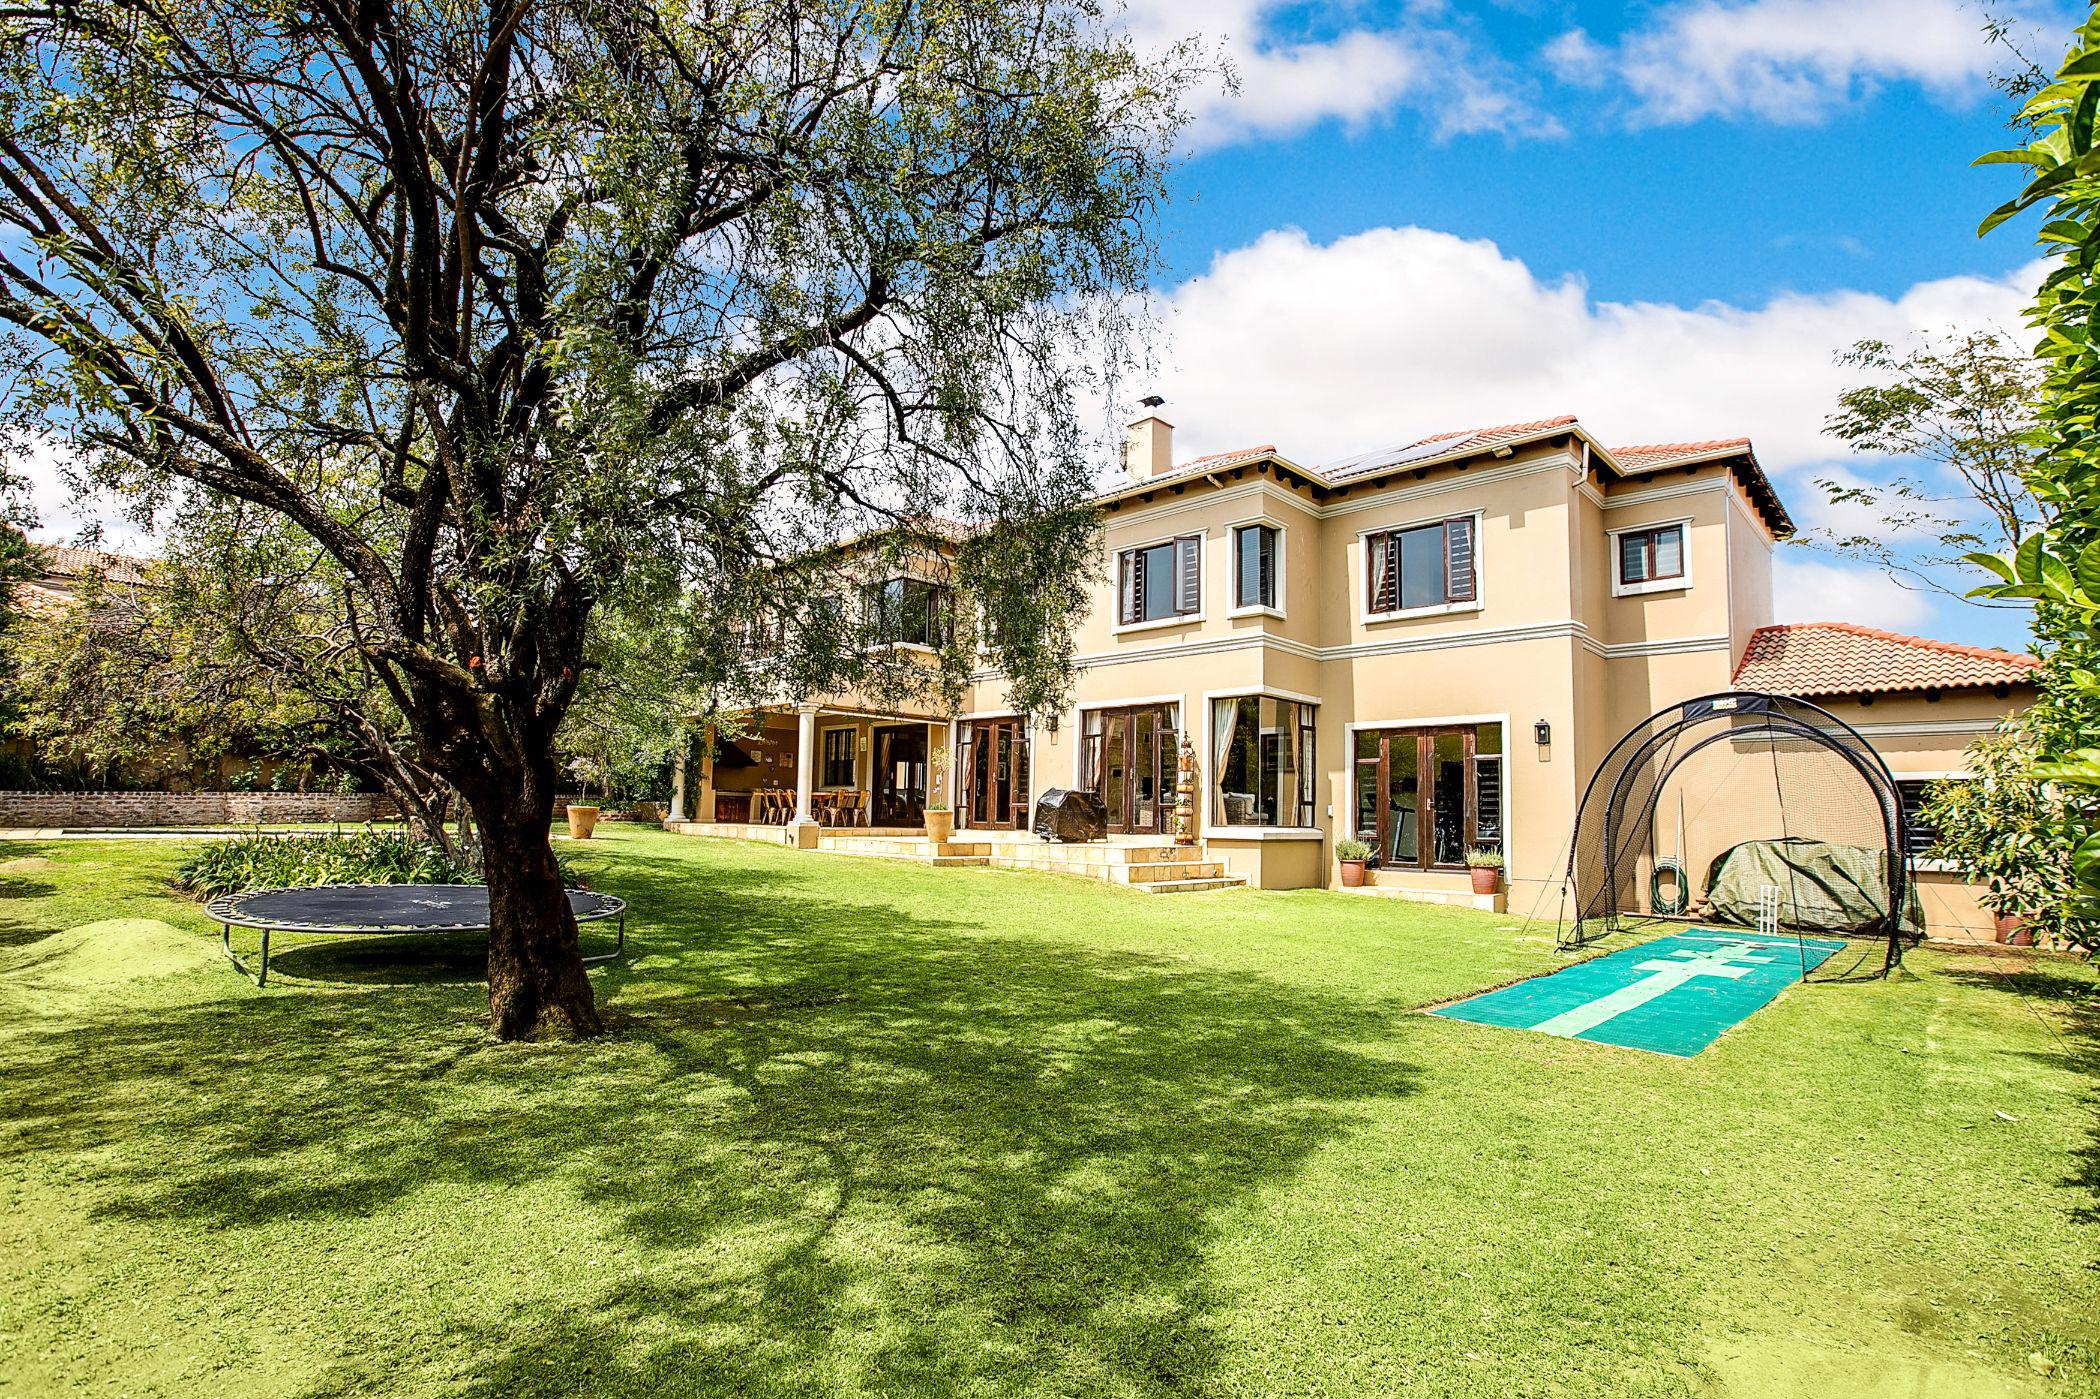 5 bedroom cluster house for sale in Bryanston